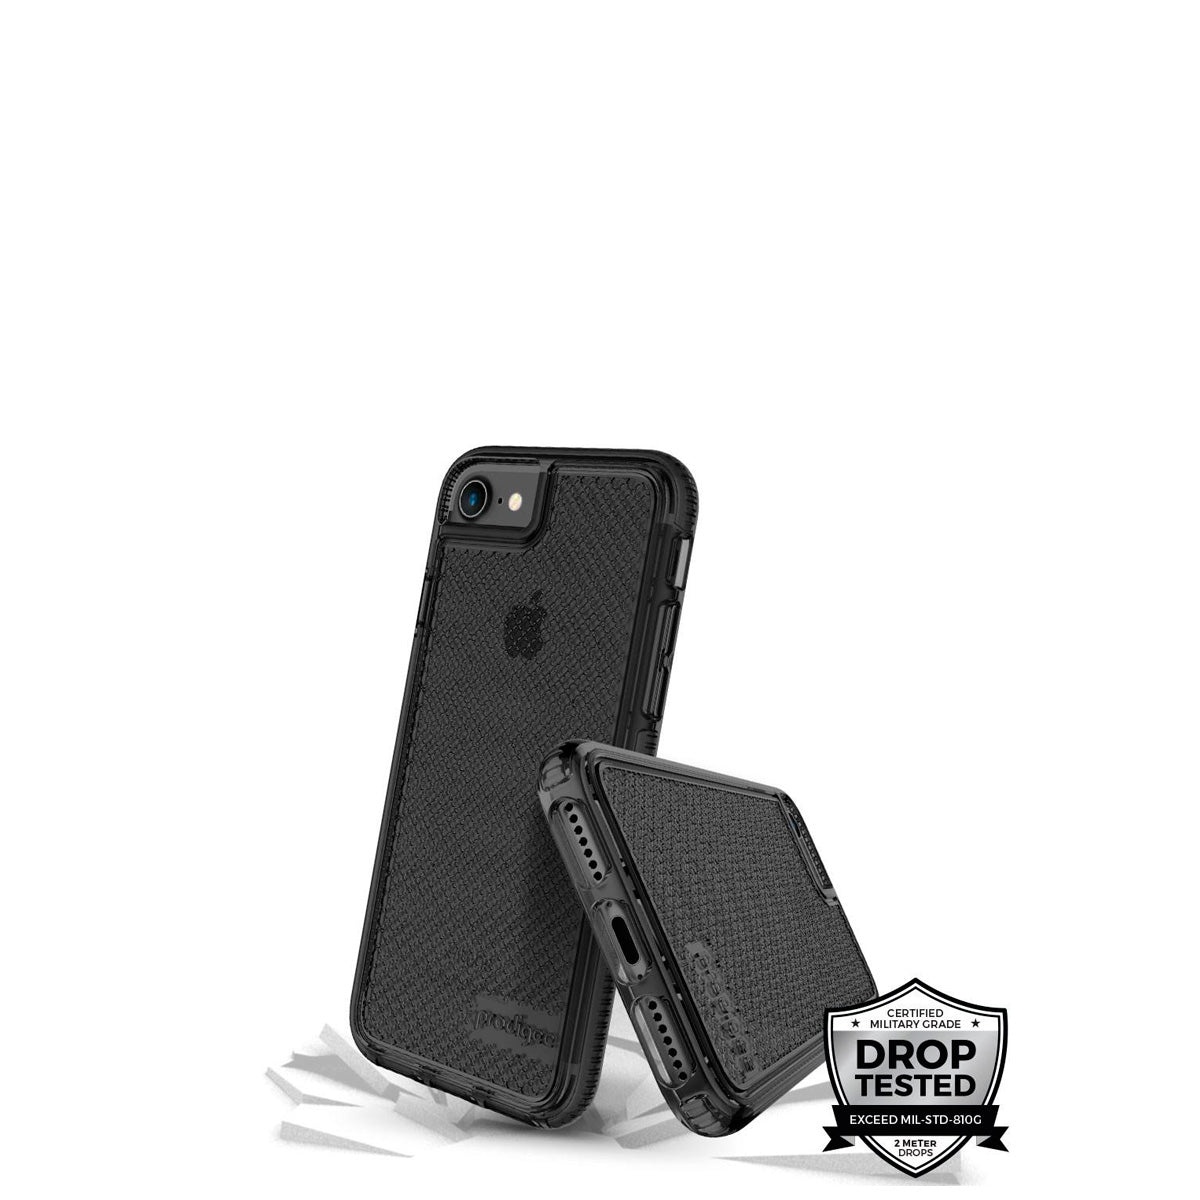 Capa de Smartphone Prodigee Safetee Apple iPhone 7/ 8/ SE 2020 Smoke